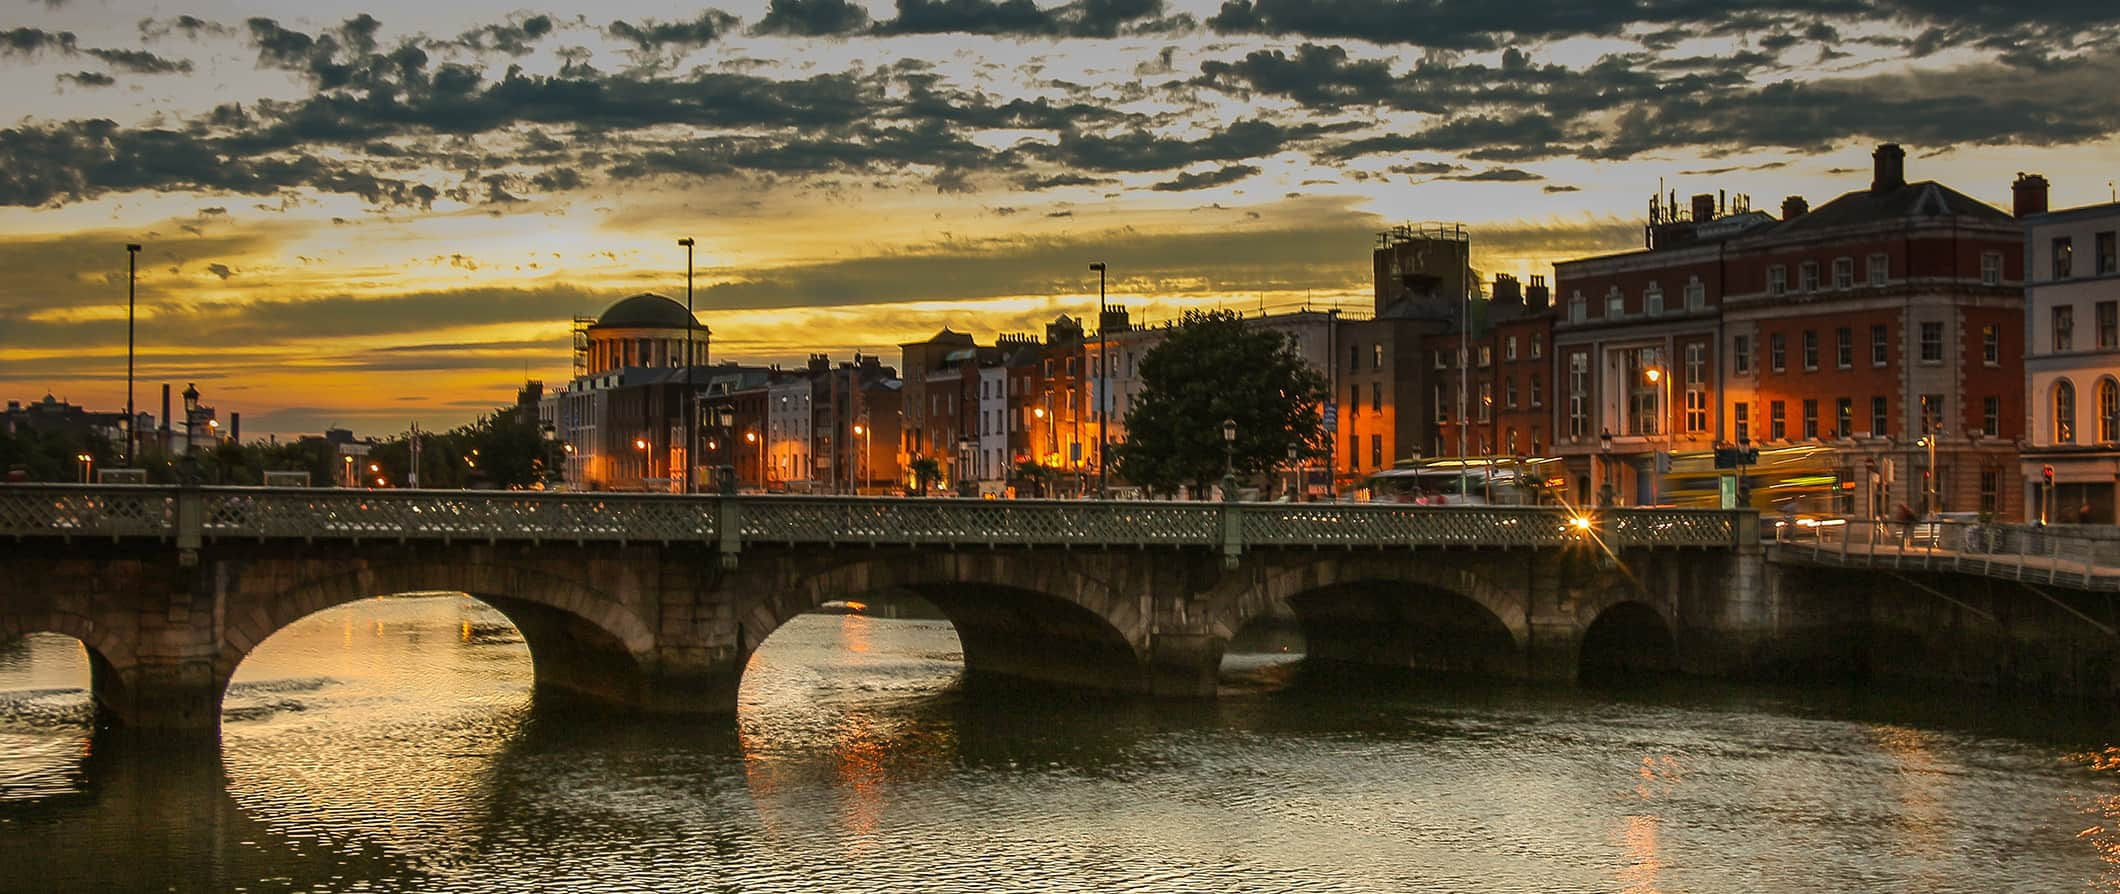 view of the Liffey River in Dublin at sundown